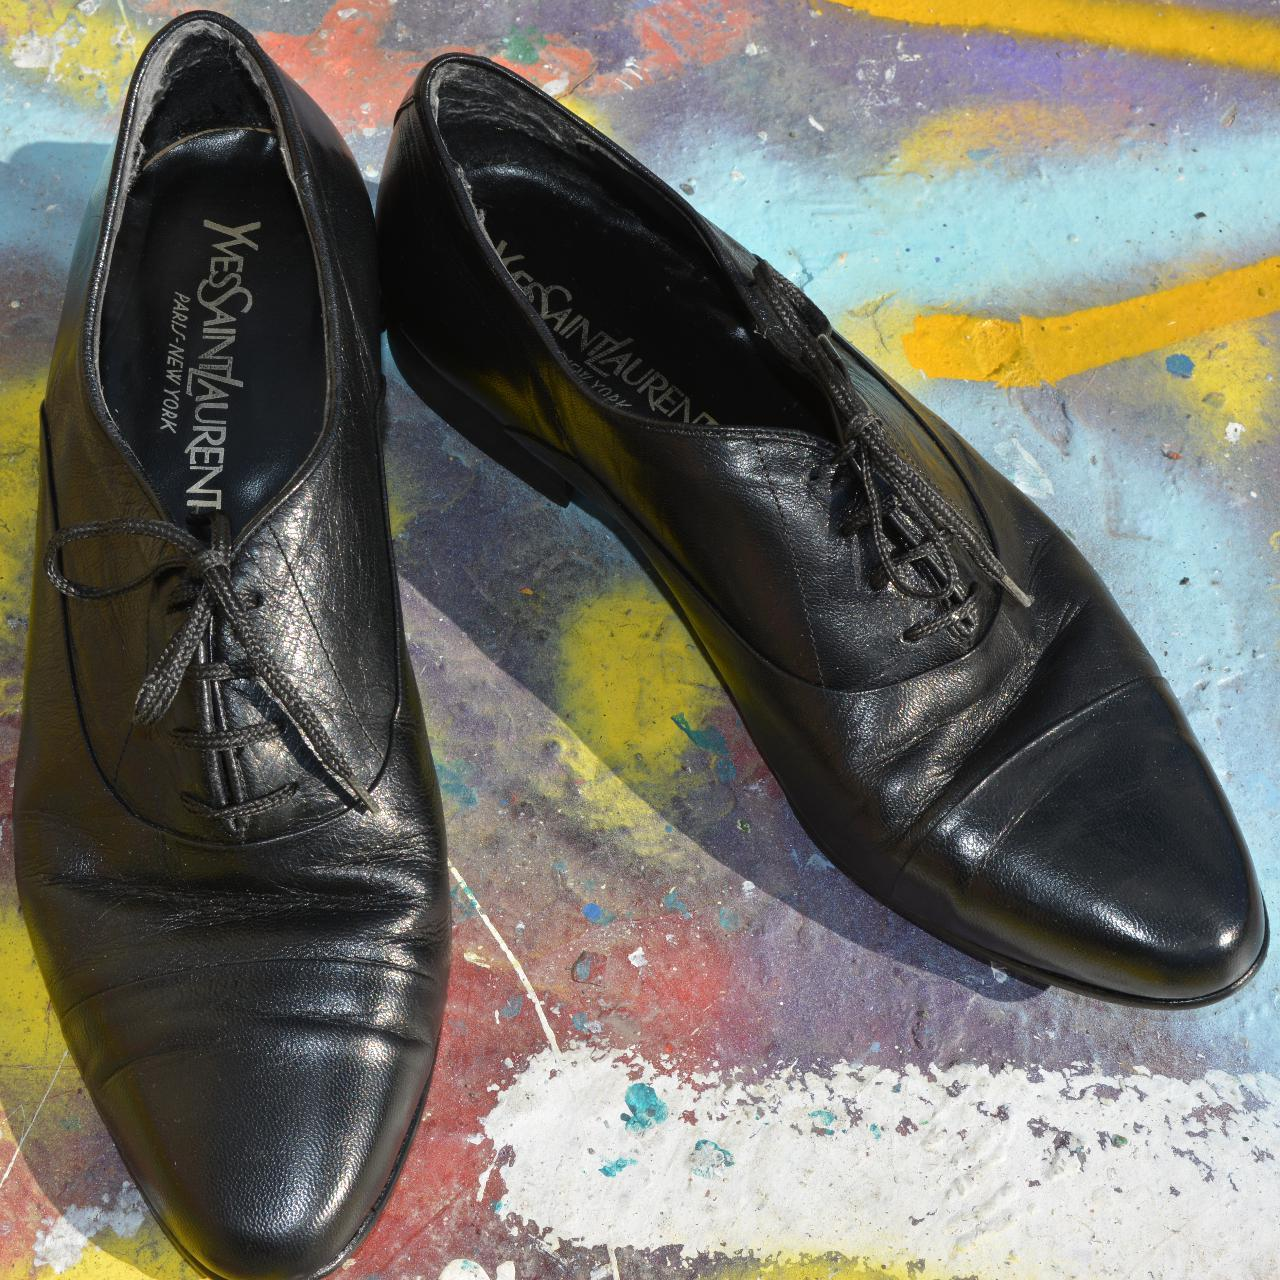 Product Image 1 - Black leather oxfords from Yves